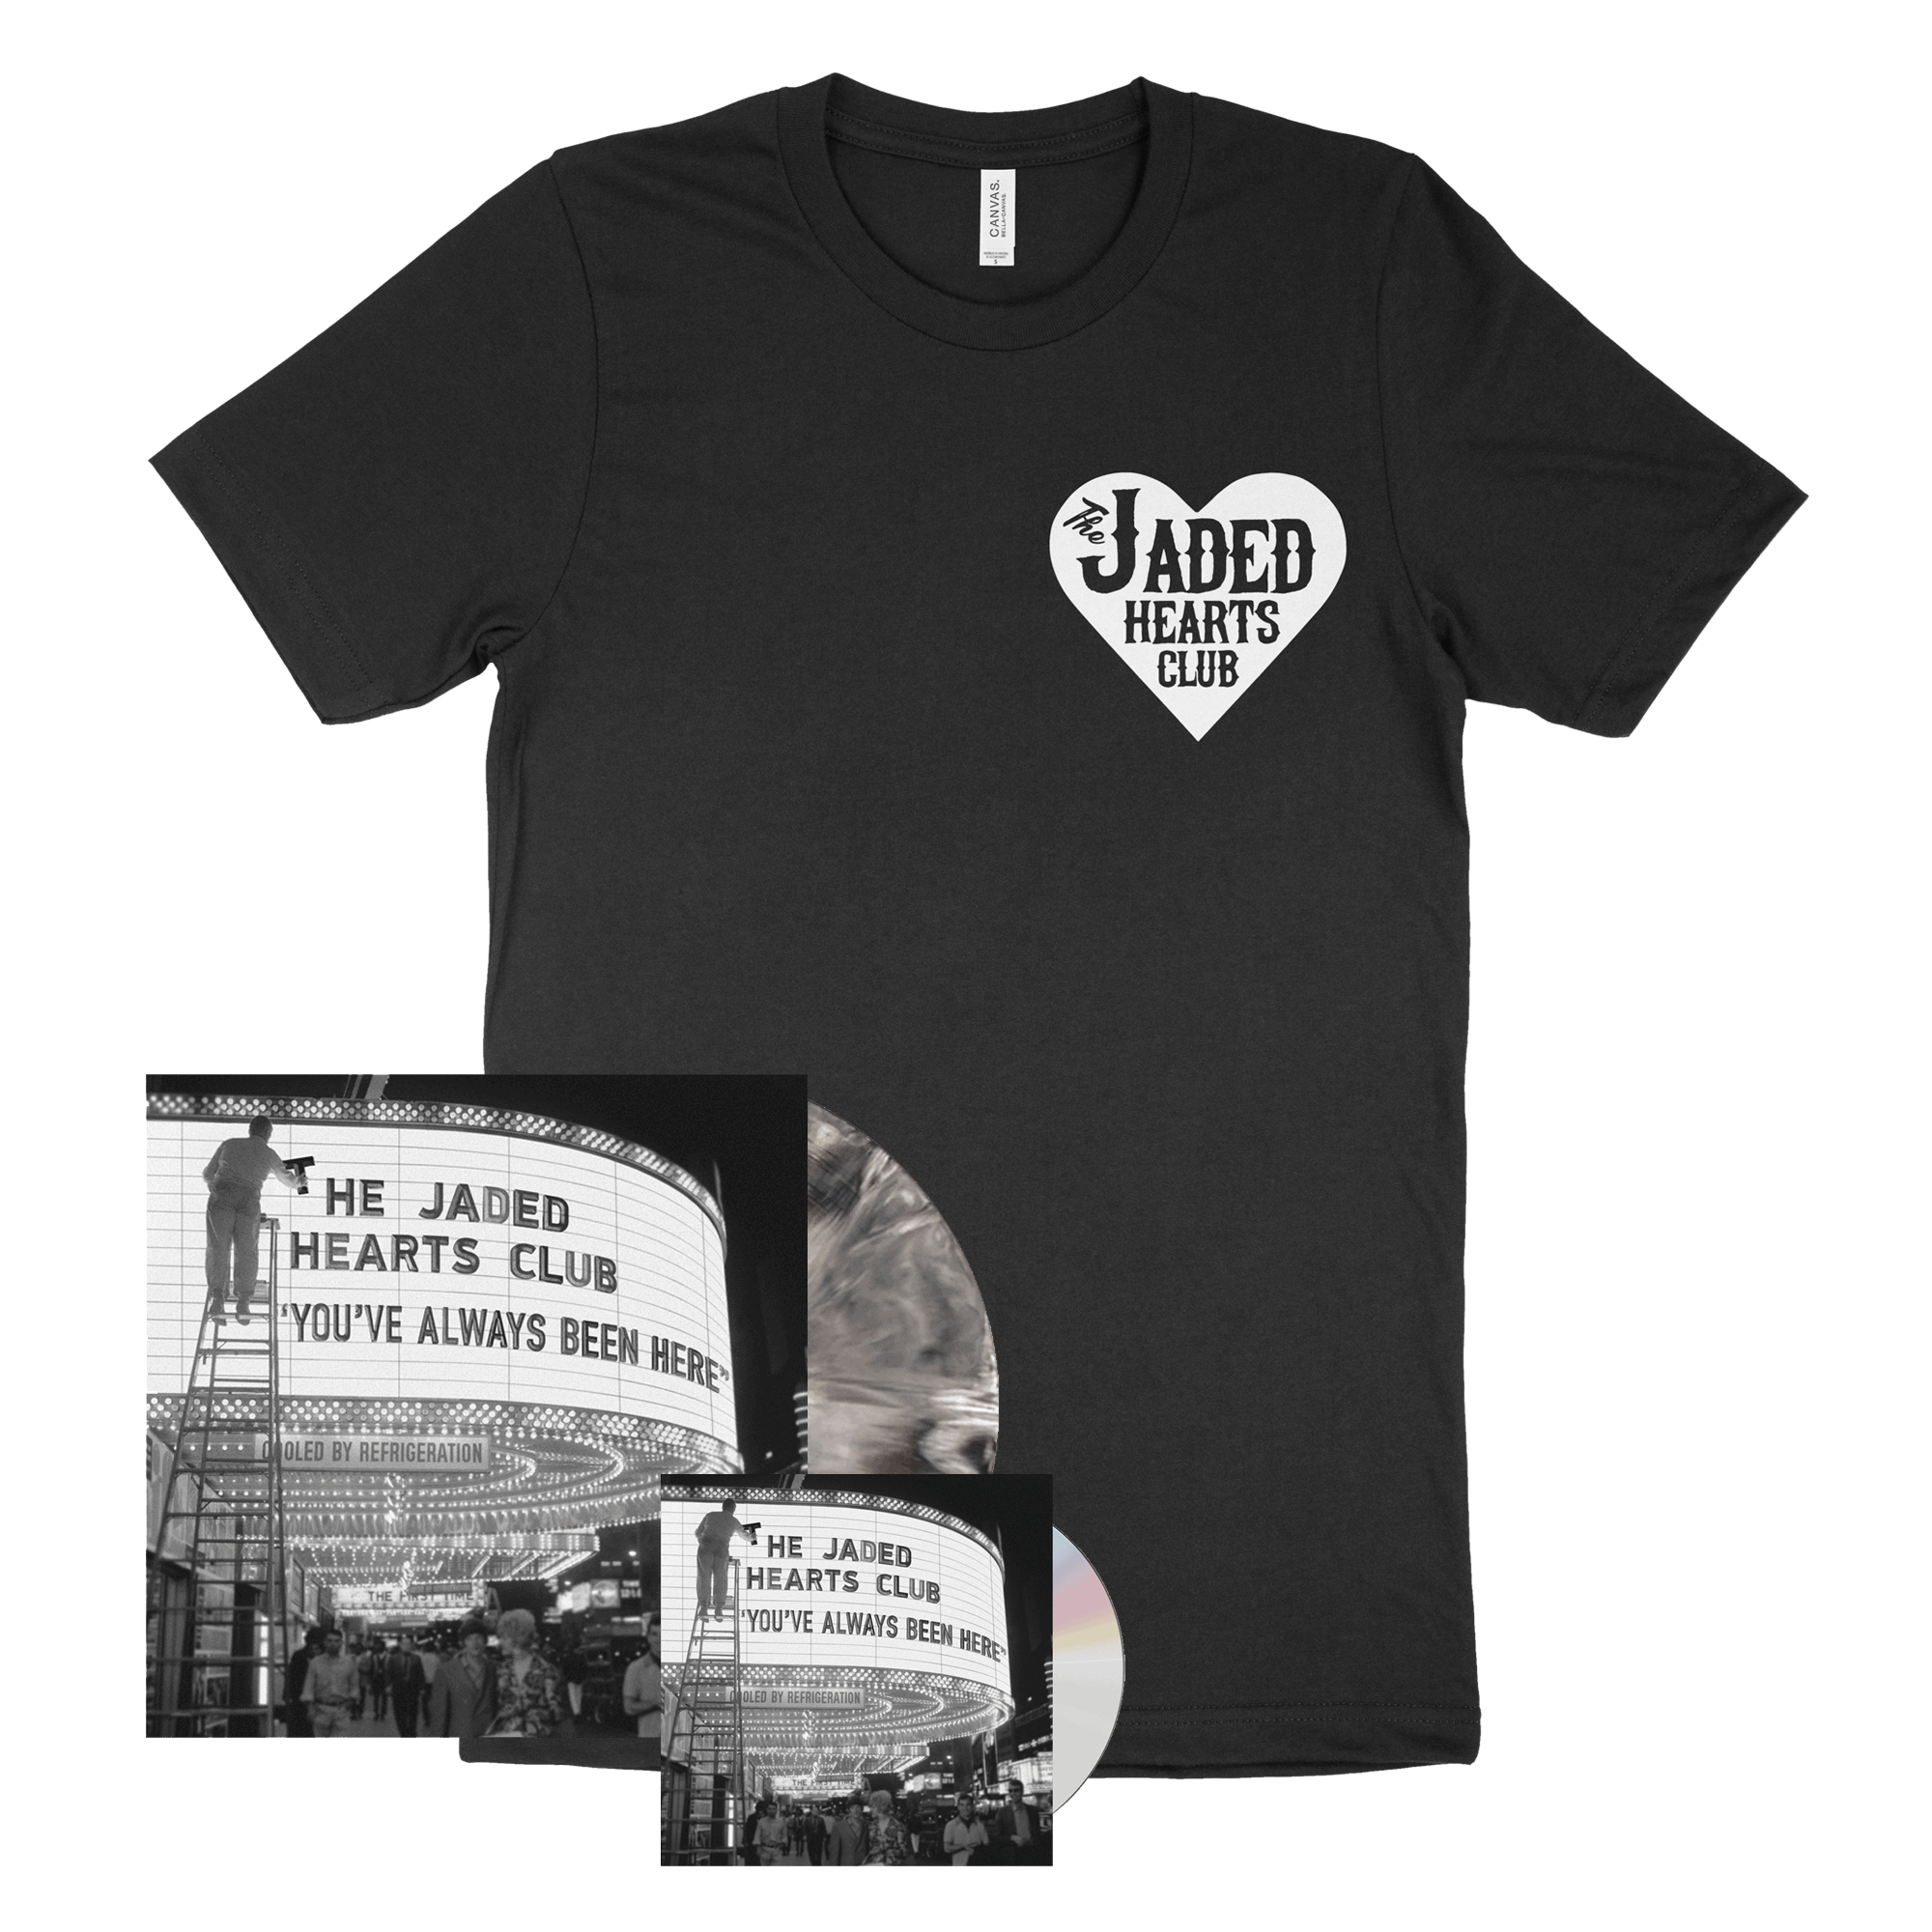 You've Always Been Here CD + Marbled Black & White Heavyweight Vinyl + Black Small Logo T-Shirt